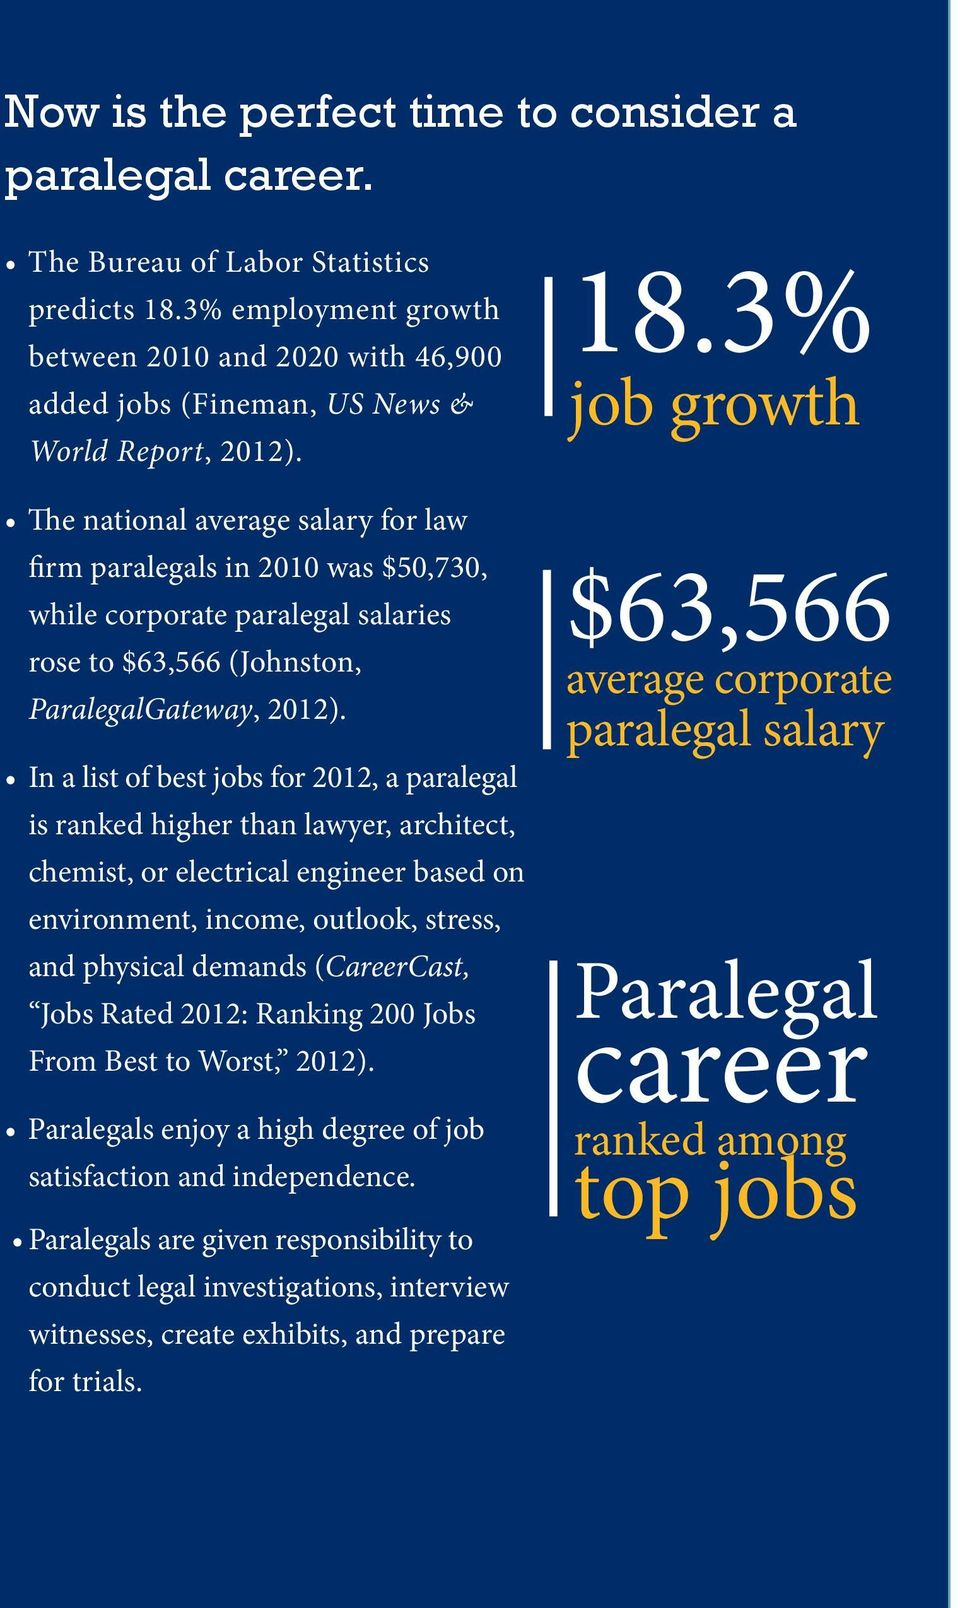 The national average salary for law firm paralegals in 2010 was $50,730, while corporate paralegal salaries rose to $63,566 (Johnston, ParalegalGateway, 2012).